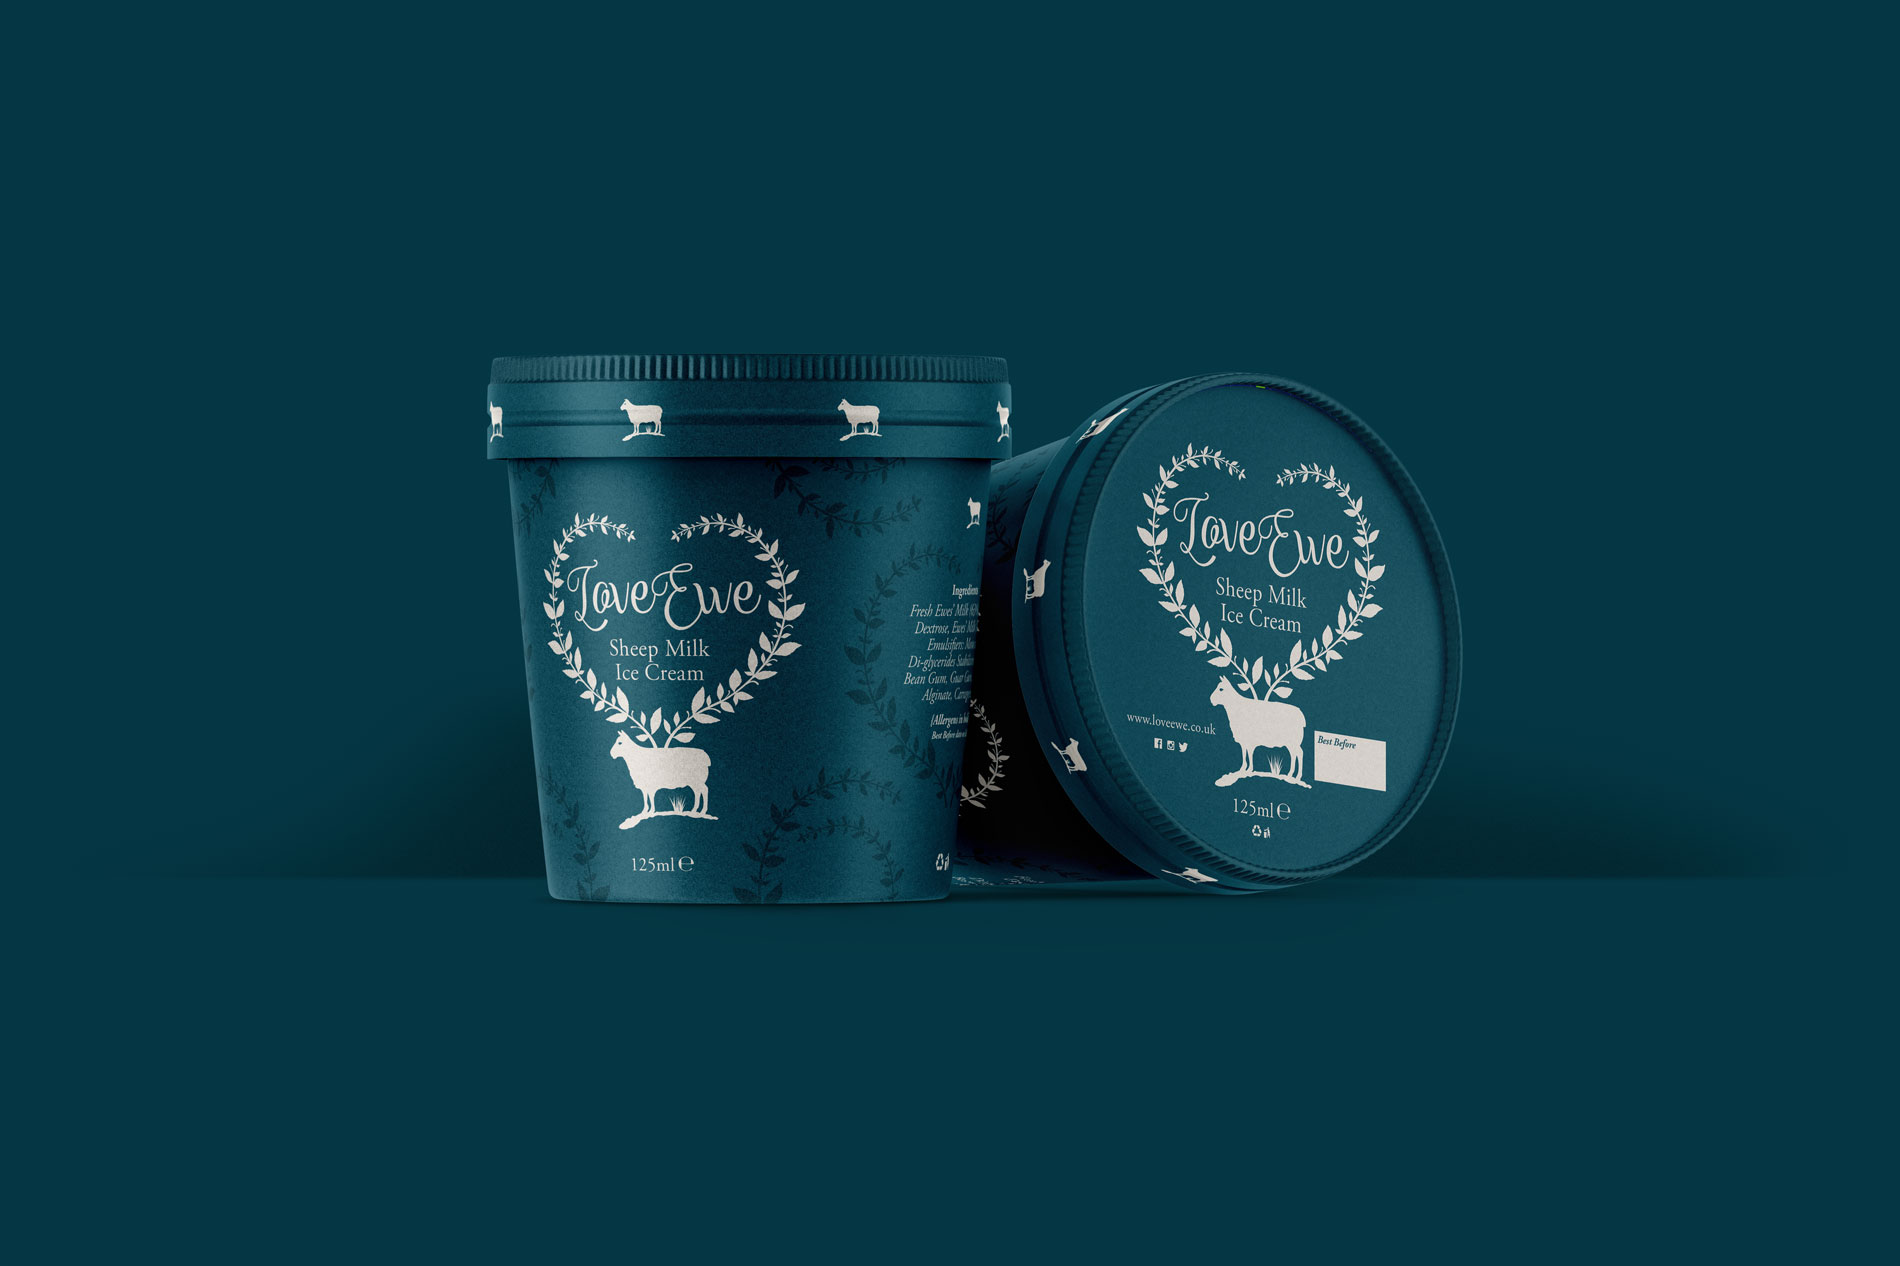 Branding & Packaging design